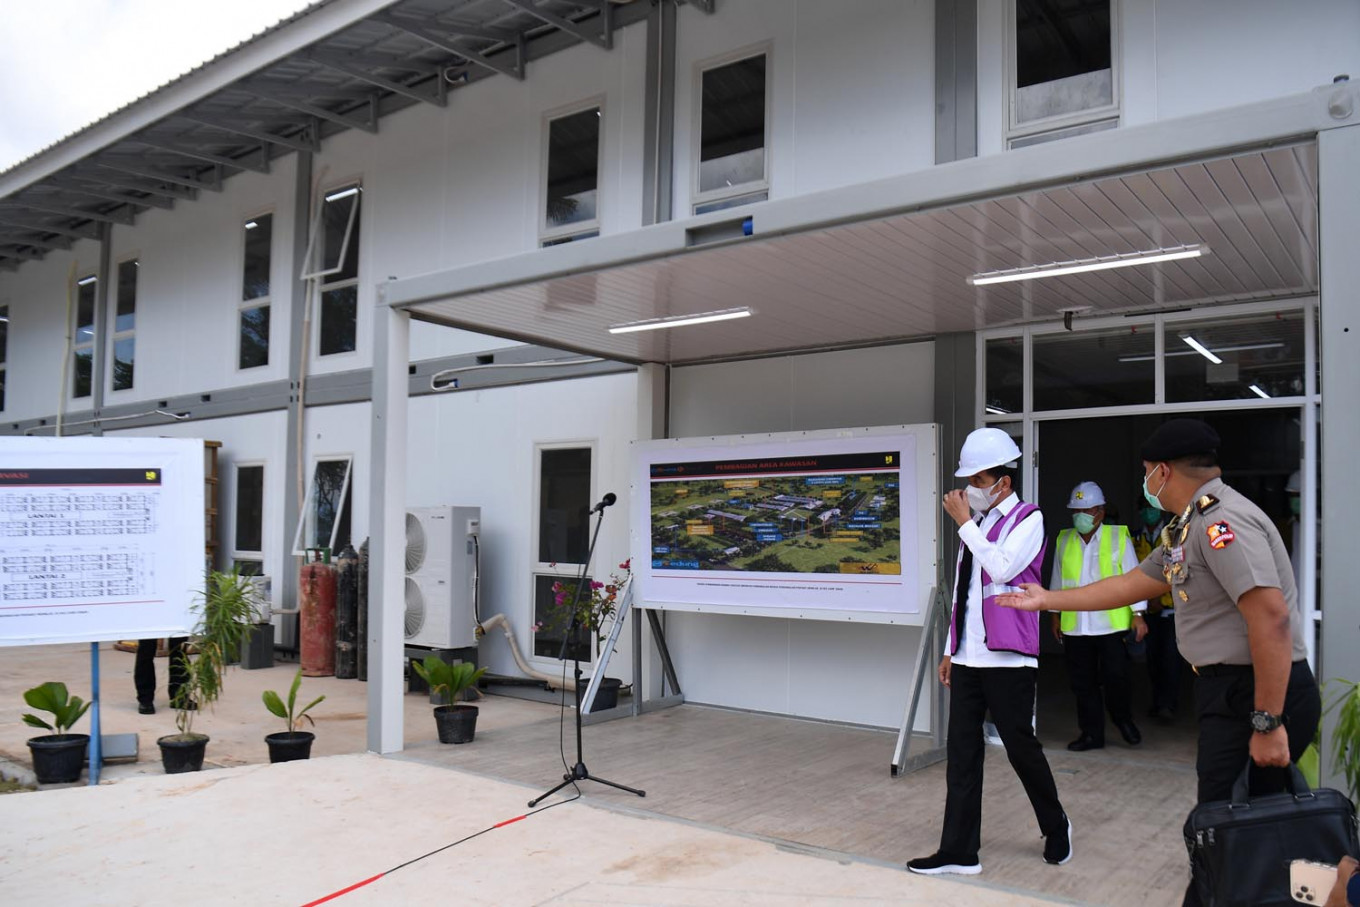 COVID-19 hospital on Galang Island to prioritize treating migrants